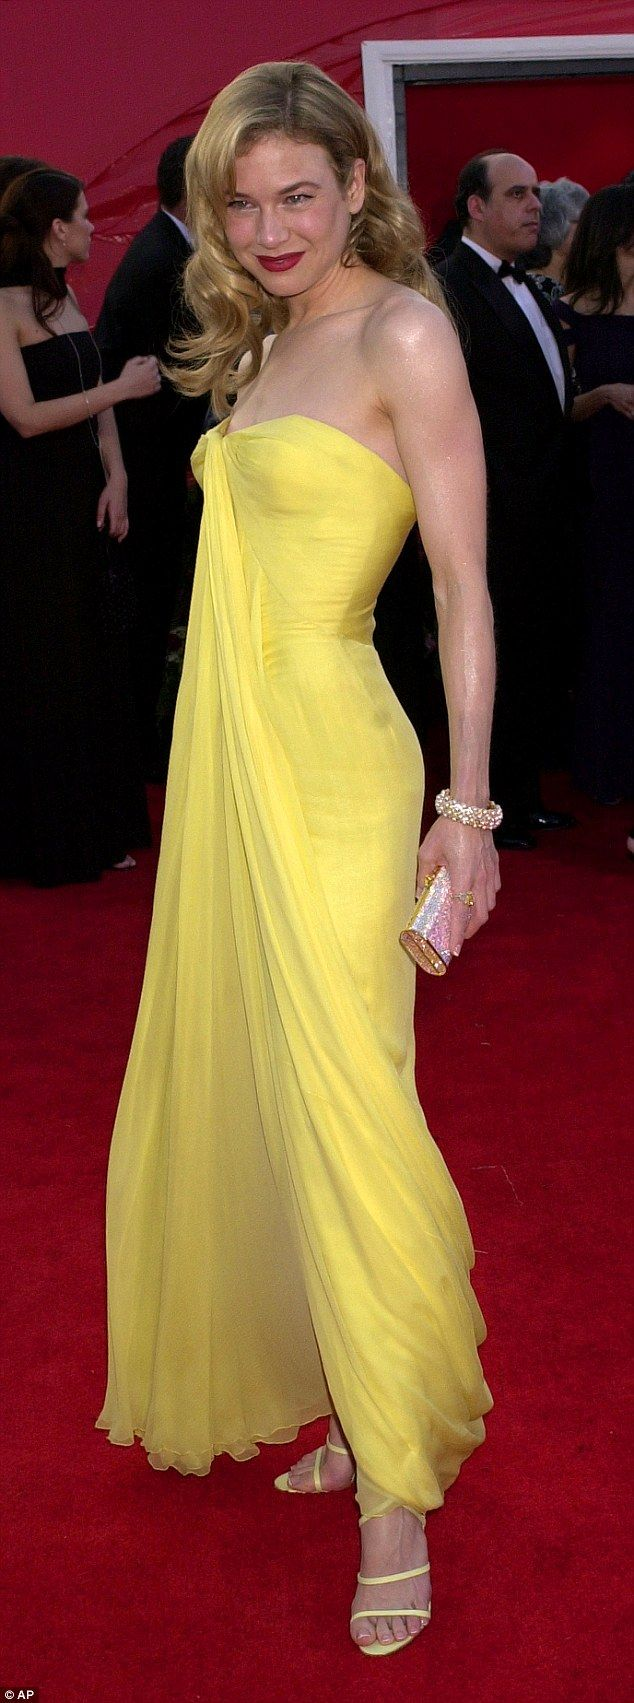 The Most Iconic Red Carpet Looks Of All Time Cheap Yellow Dresses Red Carpet Yellow Dress Yellow Dress Casual [ 1703 x 634 Pixel ]